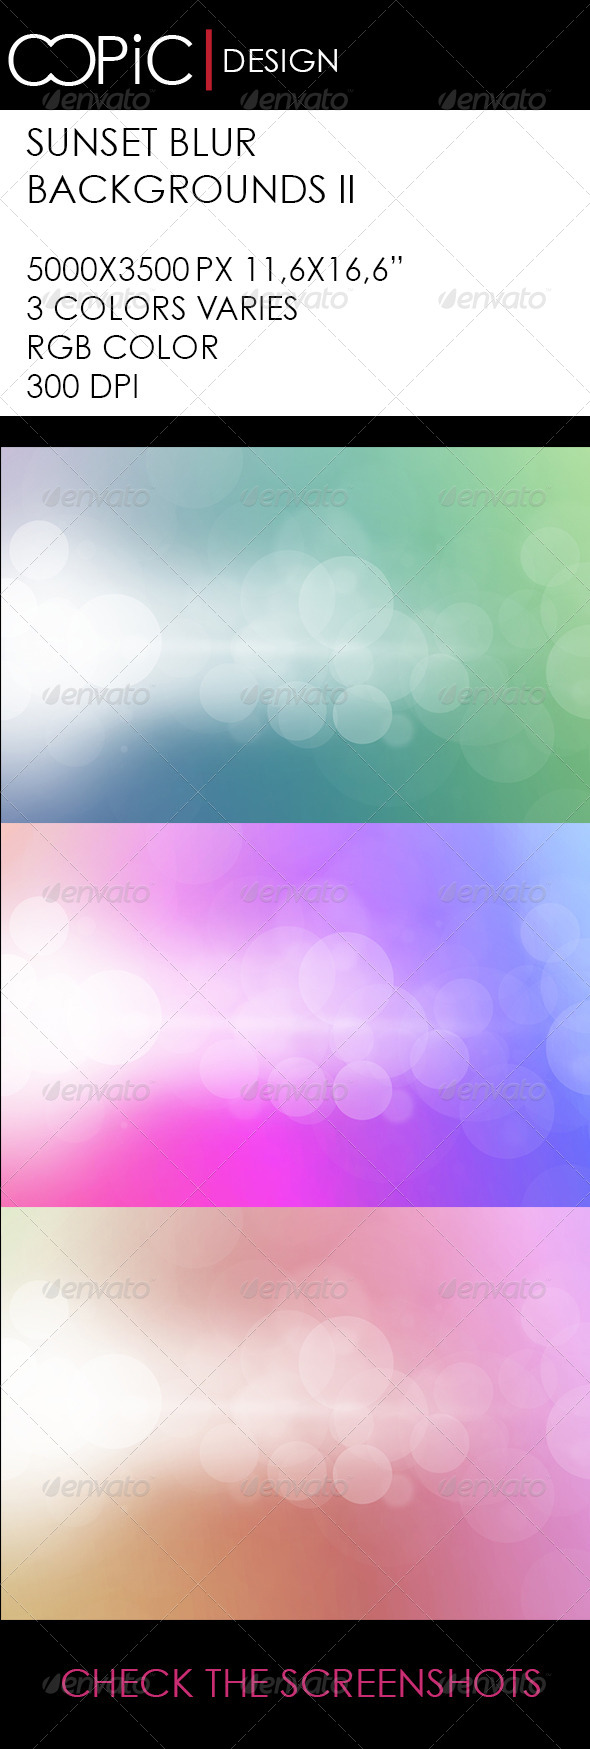 GraphicRiver Sunset Blur Background II 6005973